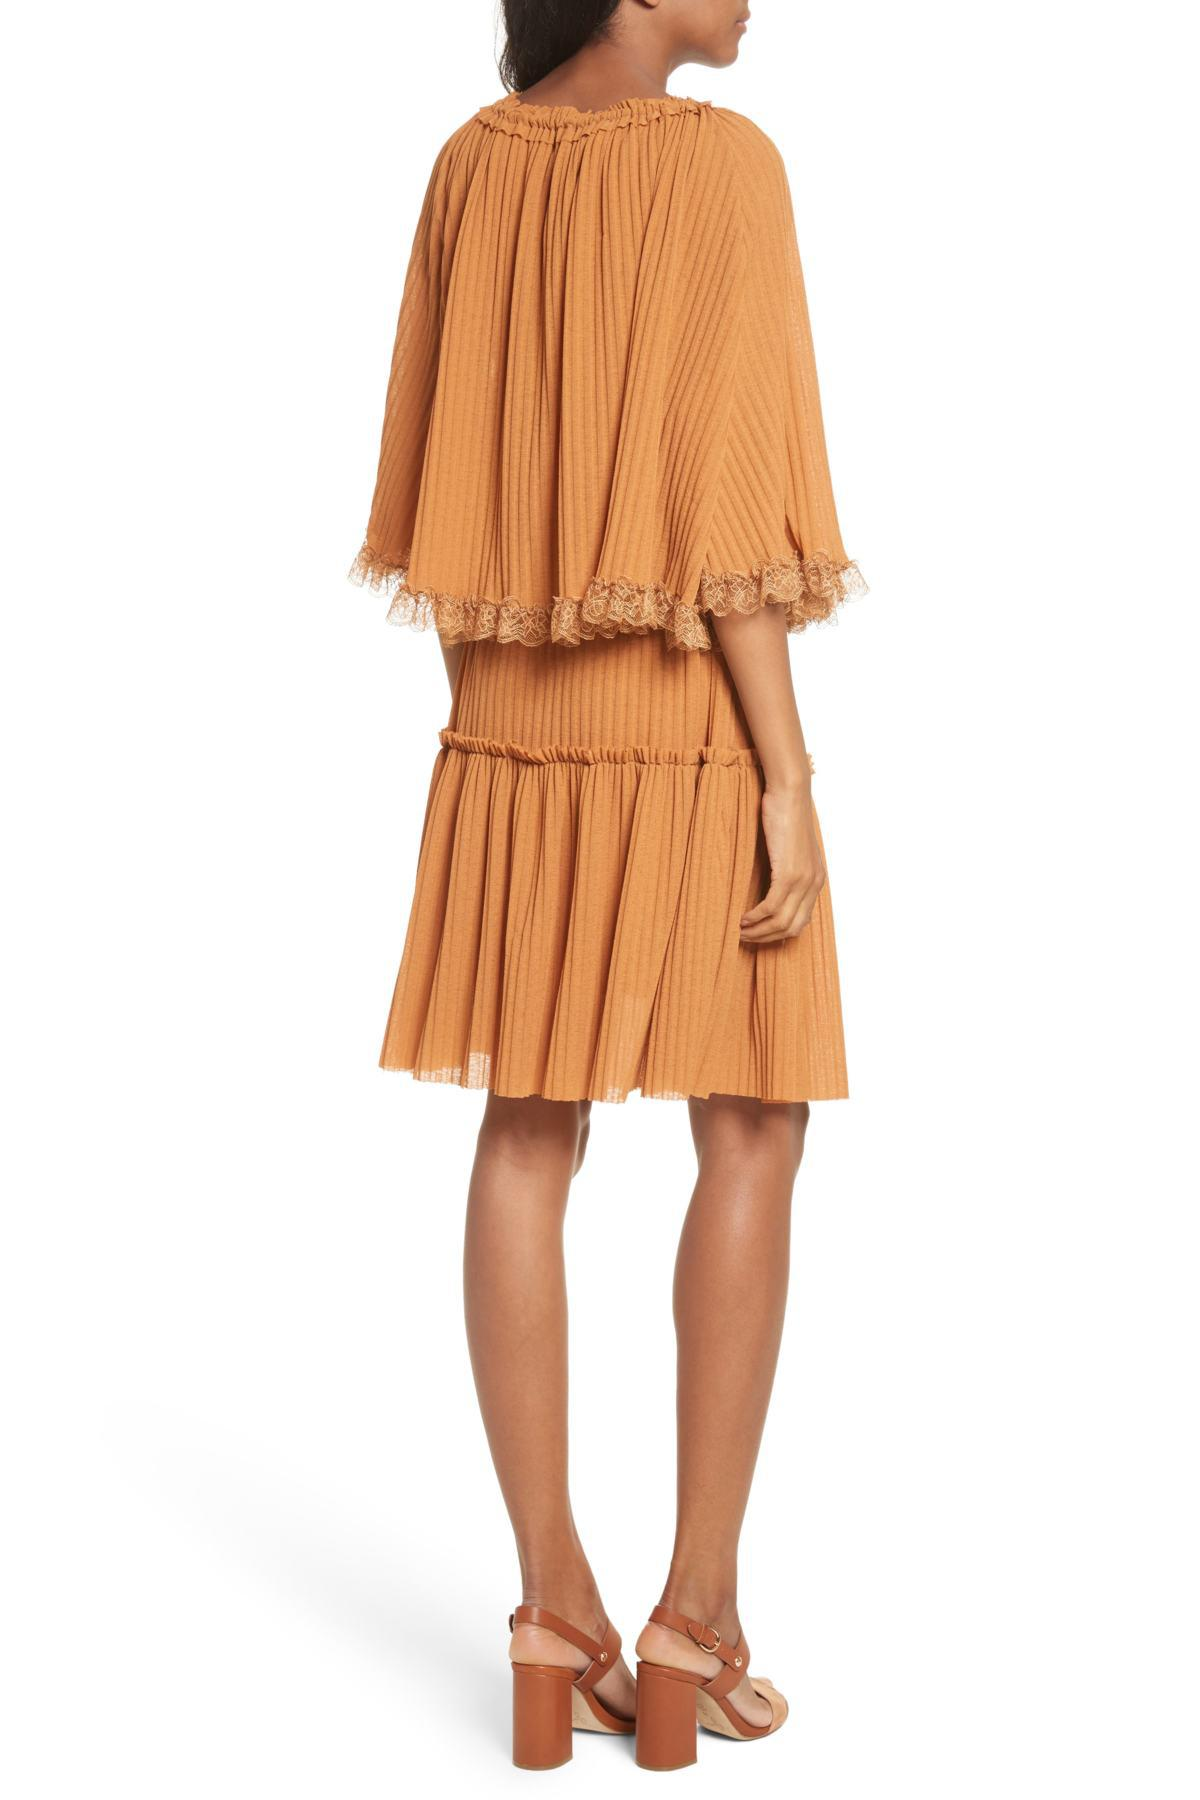 ddec06894a Lyst - See By Chloé See By Chlo  Pleated Popover Dress in Brown